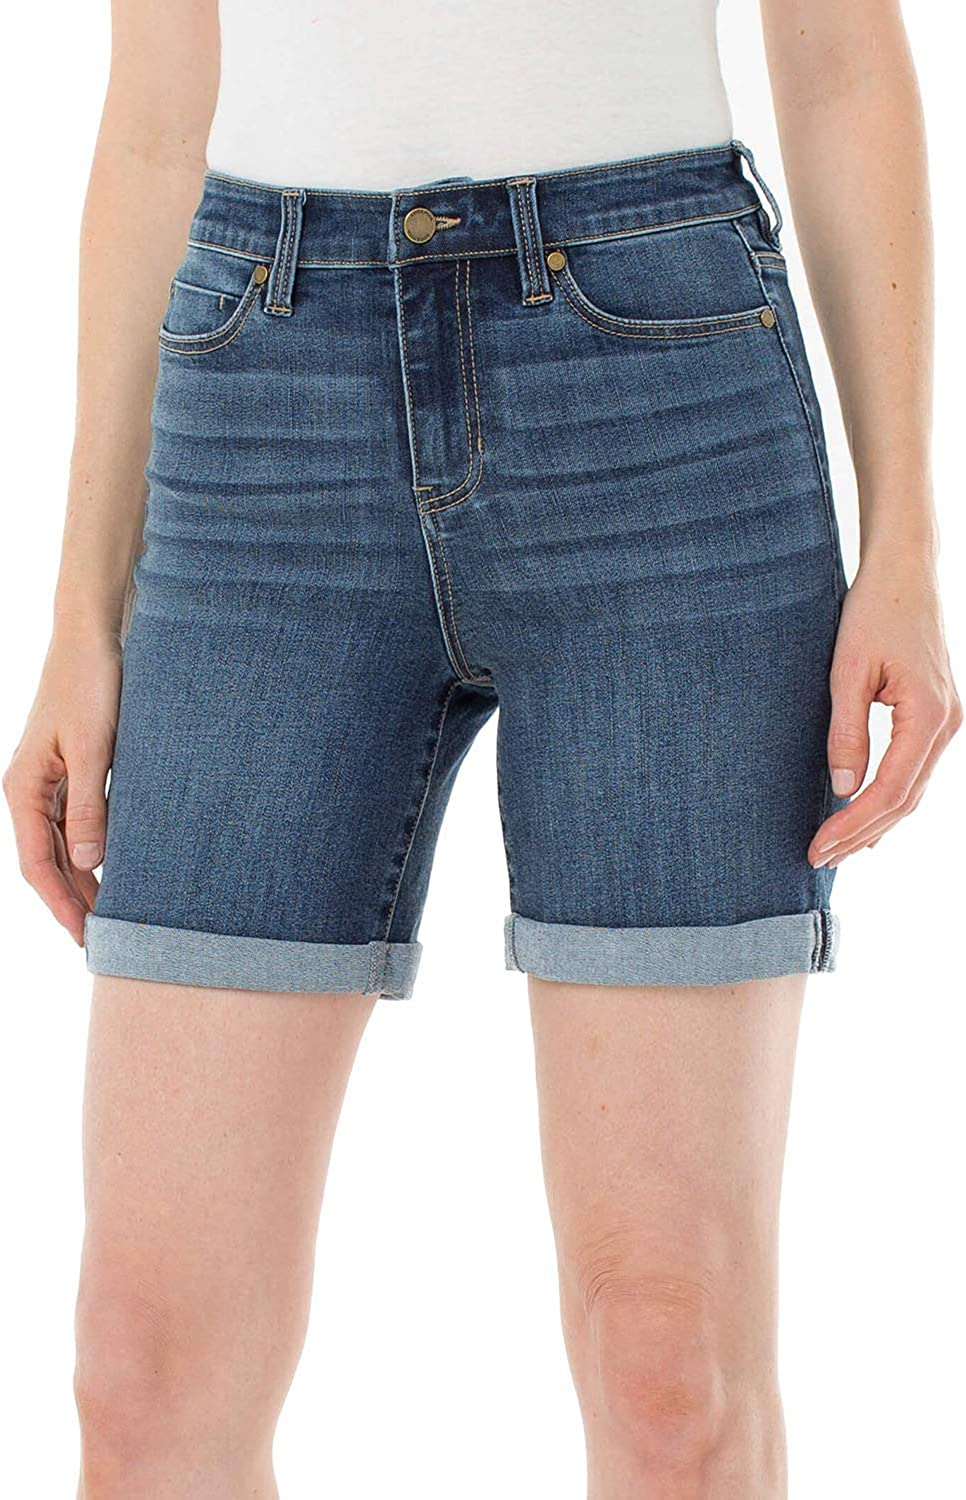 Liverpool Women's All stores are sold Kristy High Short Eco-Friendly Rise Rolled Sale Special Price